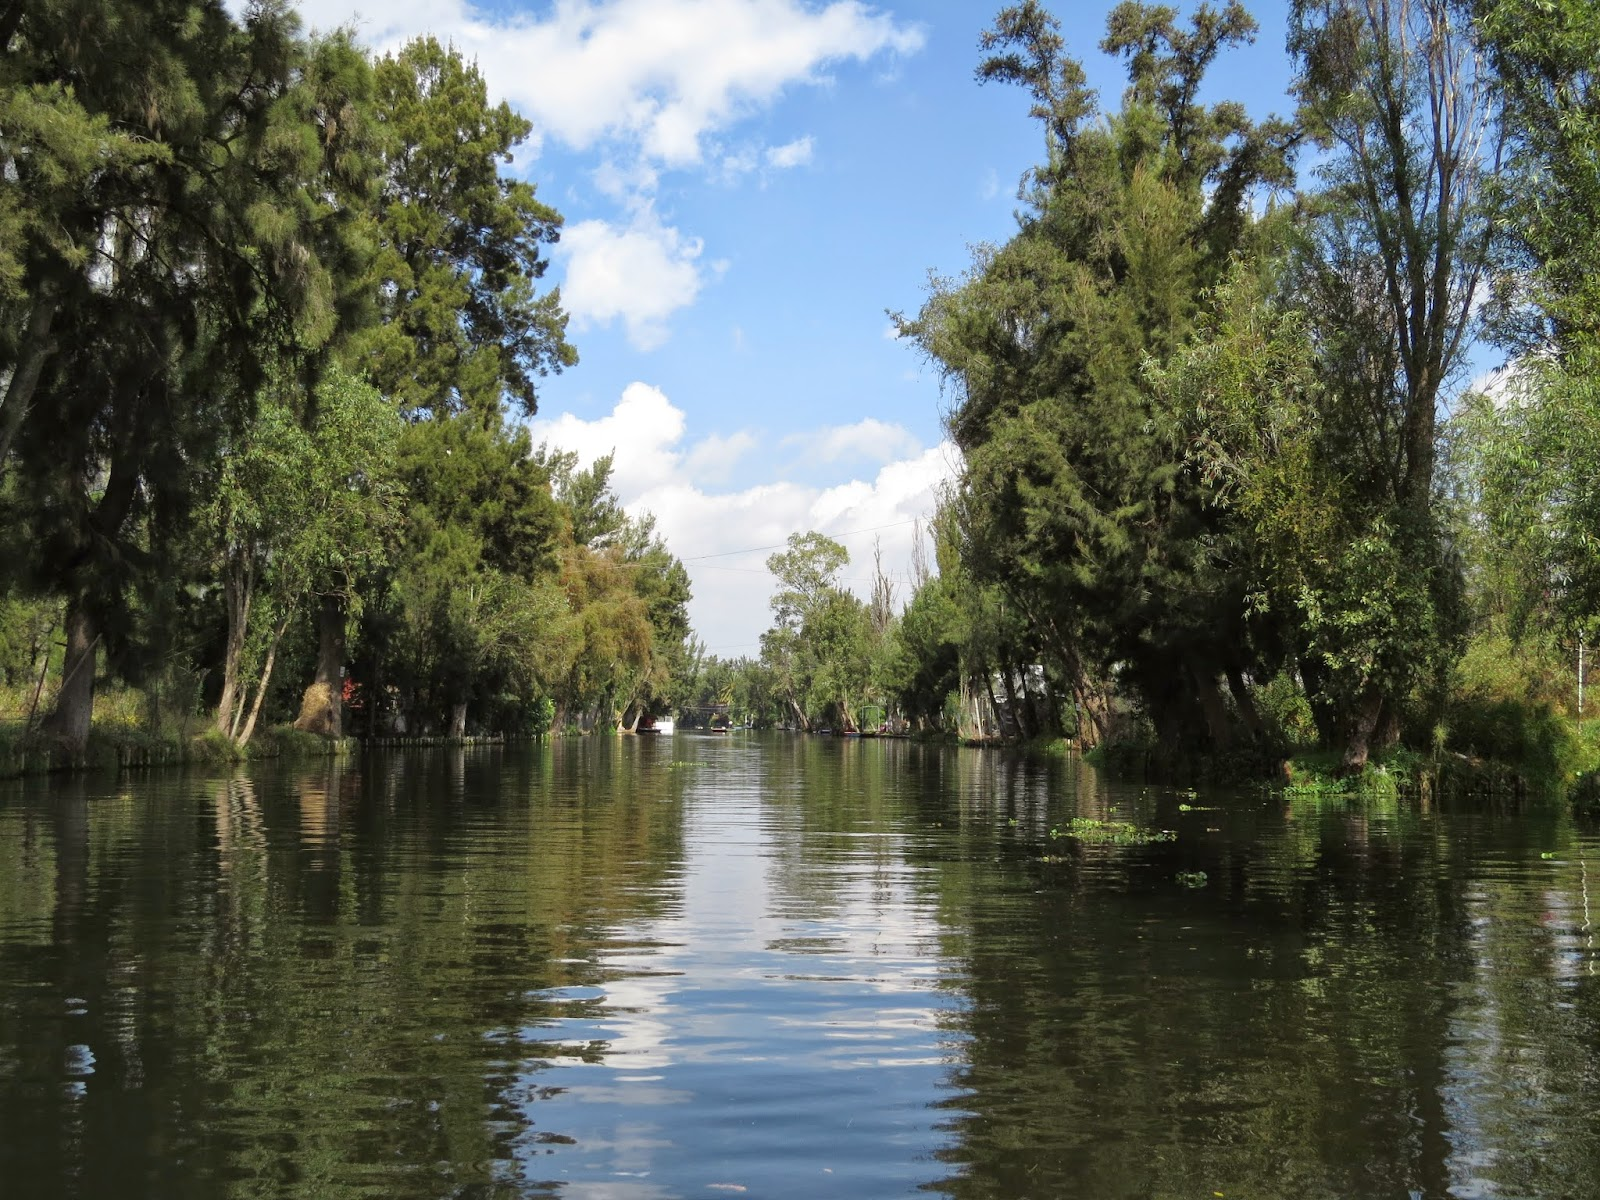 ecosystems components lake xochimilco mexico This species is known only from central mexico conservation action is focusing on raising the profile of lake xochimilco through ambystoma mexicanum.